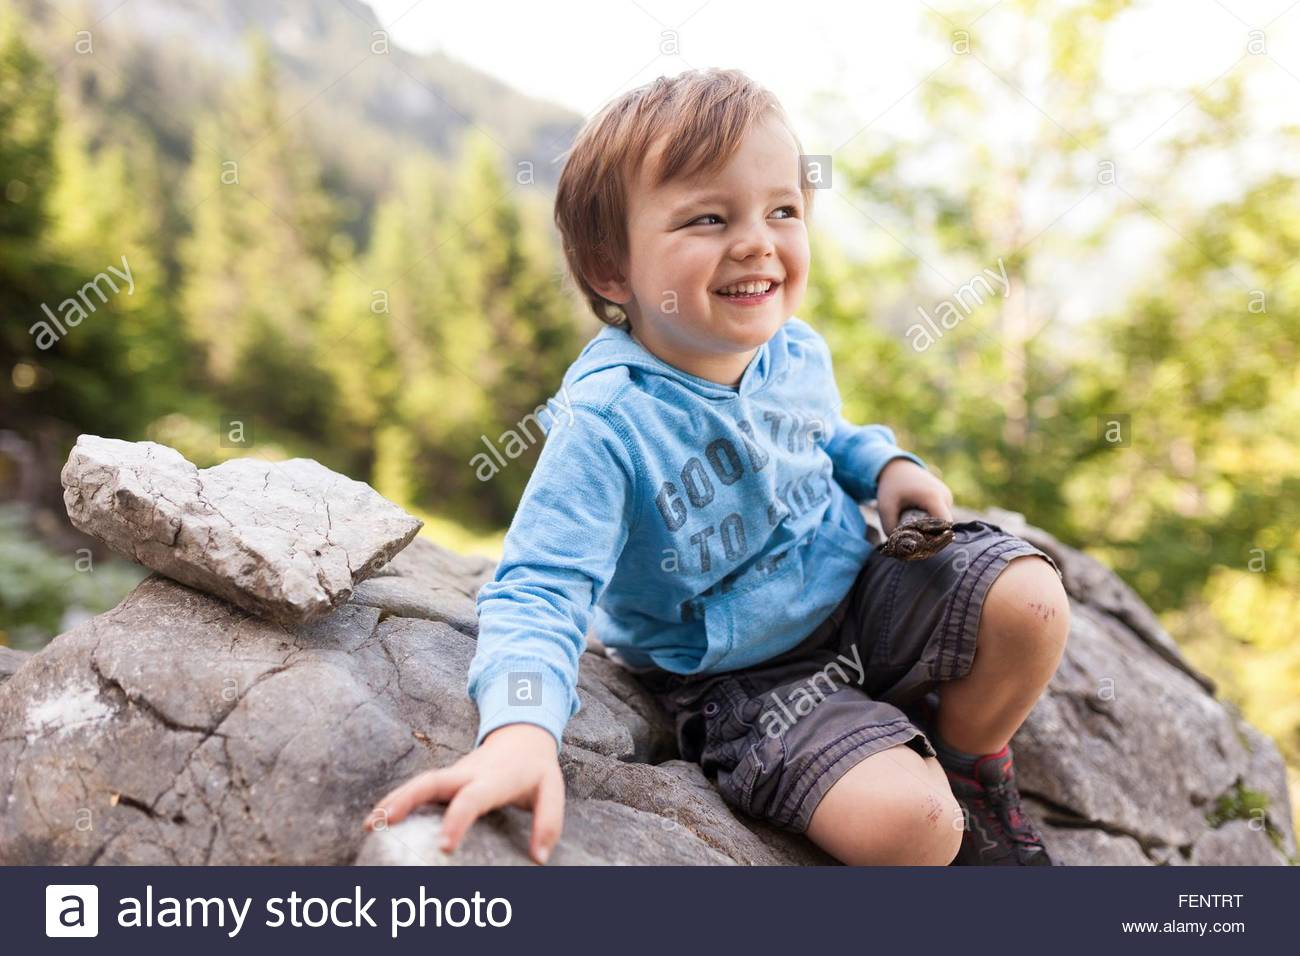 Portrait of young boy sitting on rock - Stock Image